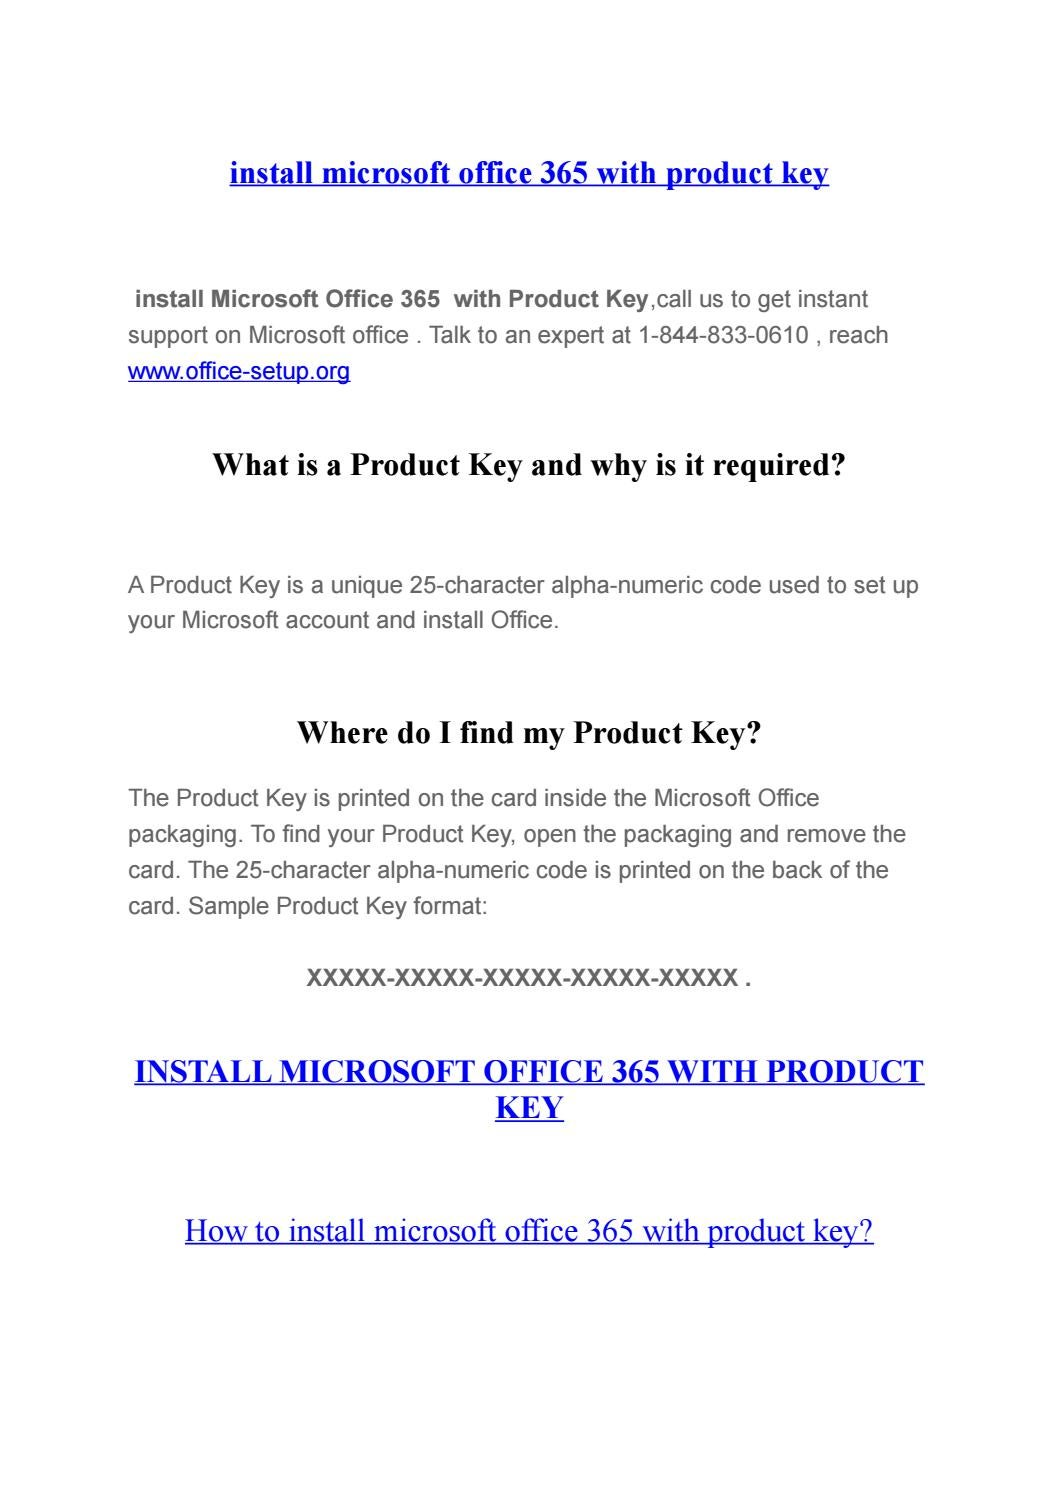 Icrosoft Comgo To Www Bing Com: Install Microsoft Office 365 With Product Key By